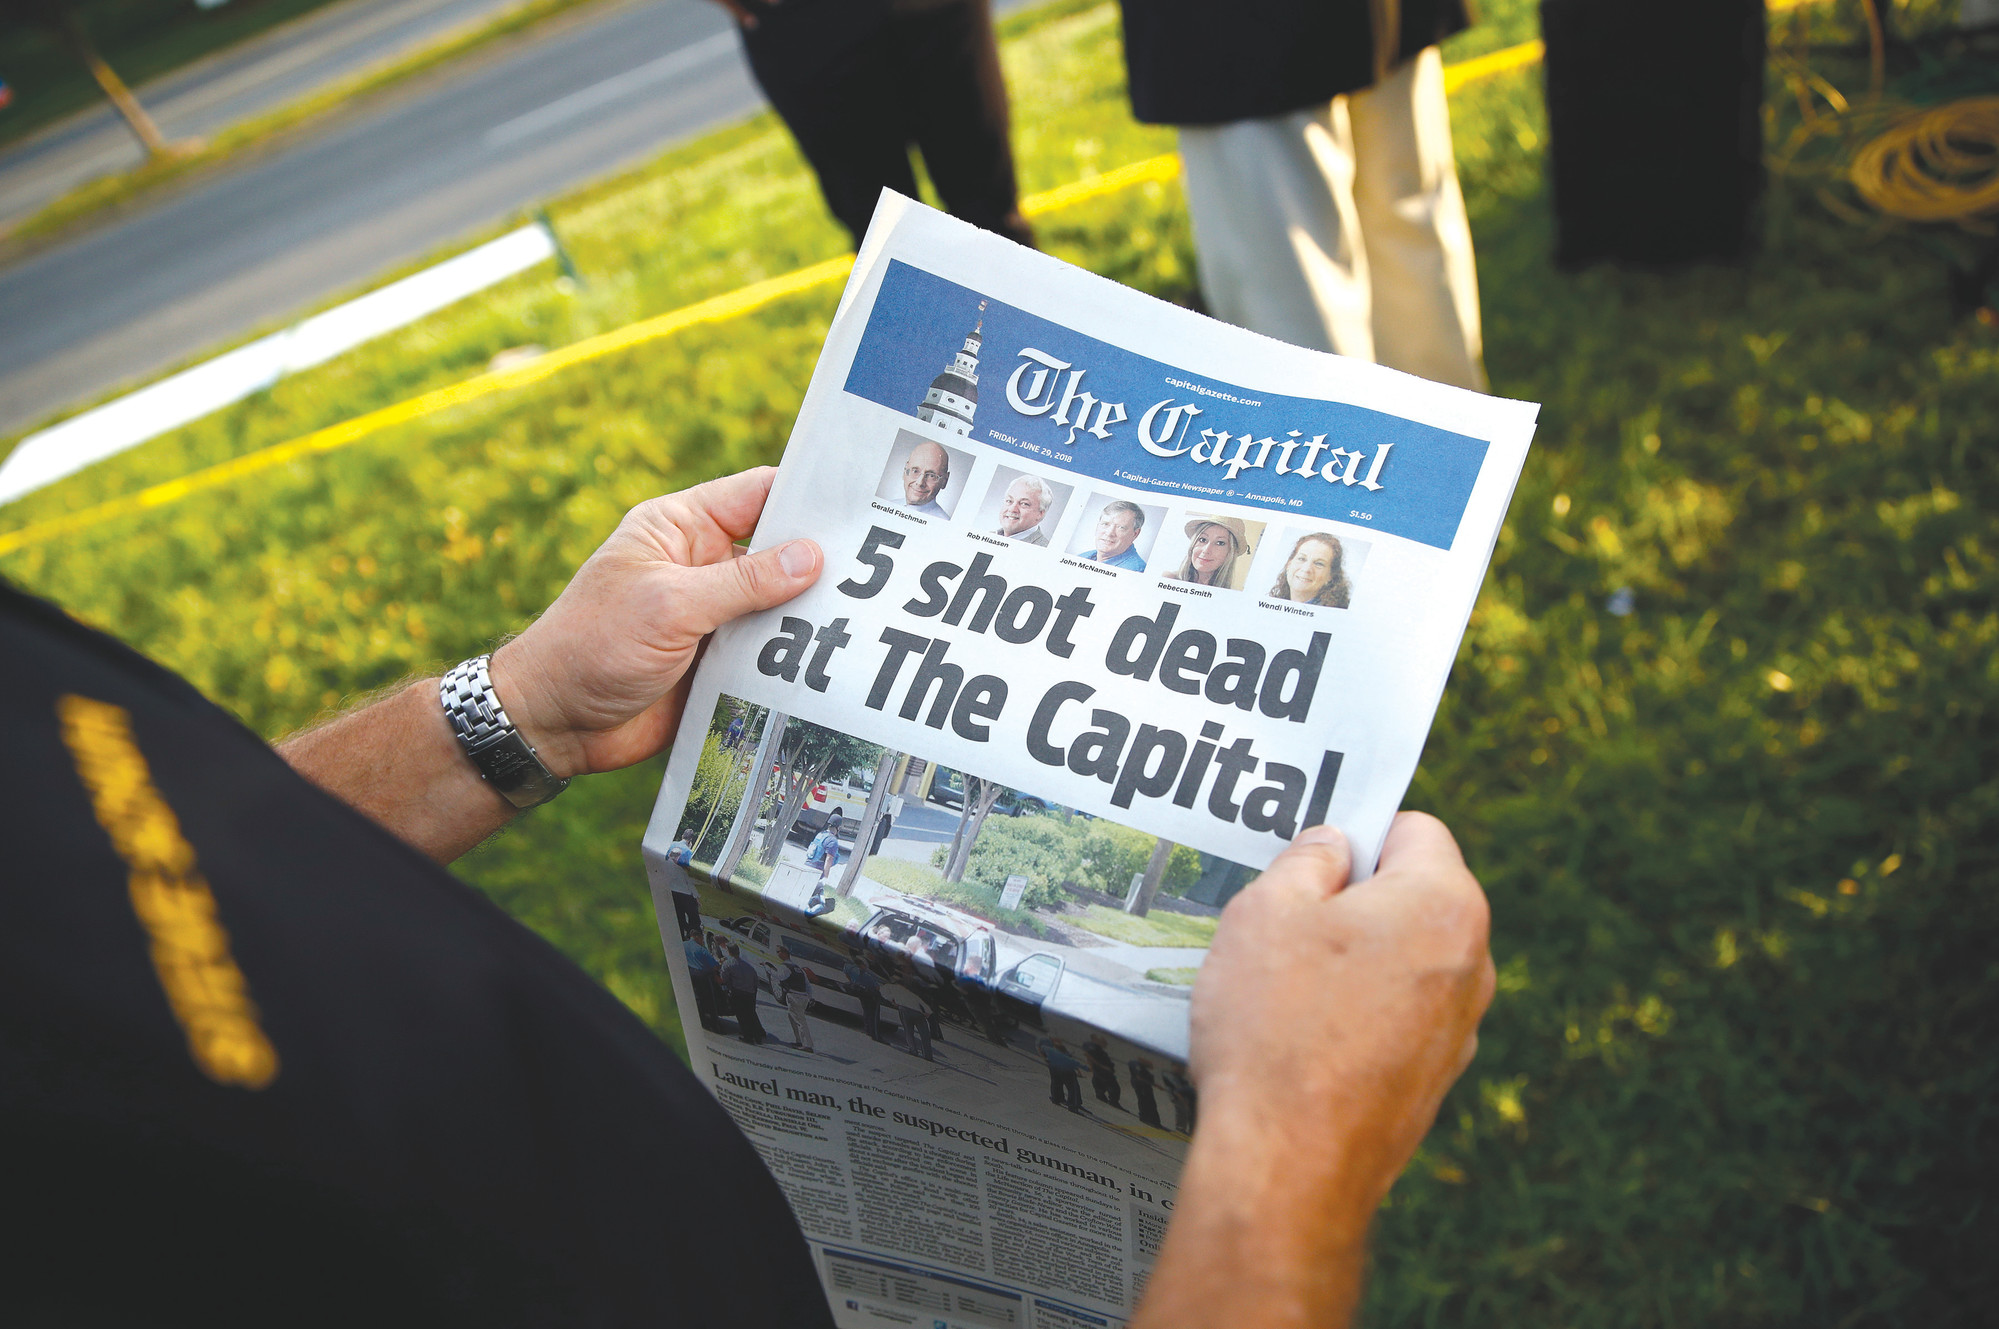 Newspaper Suffers Deadly Attack, Publishes the Next Day